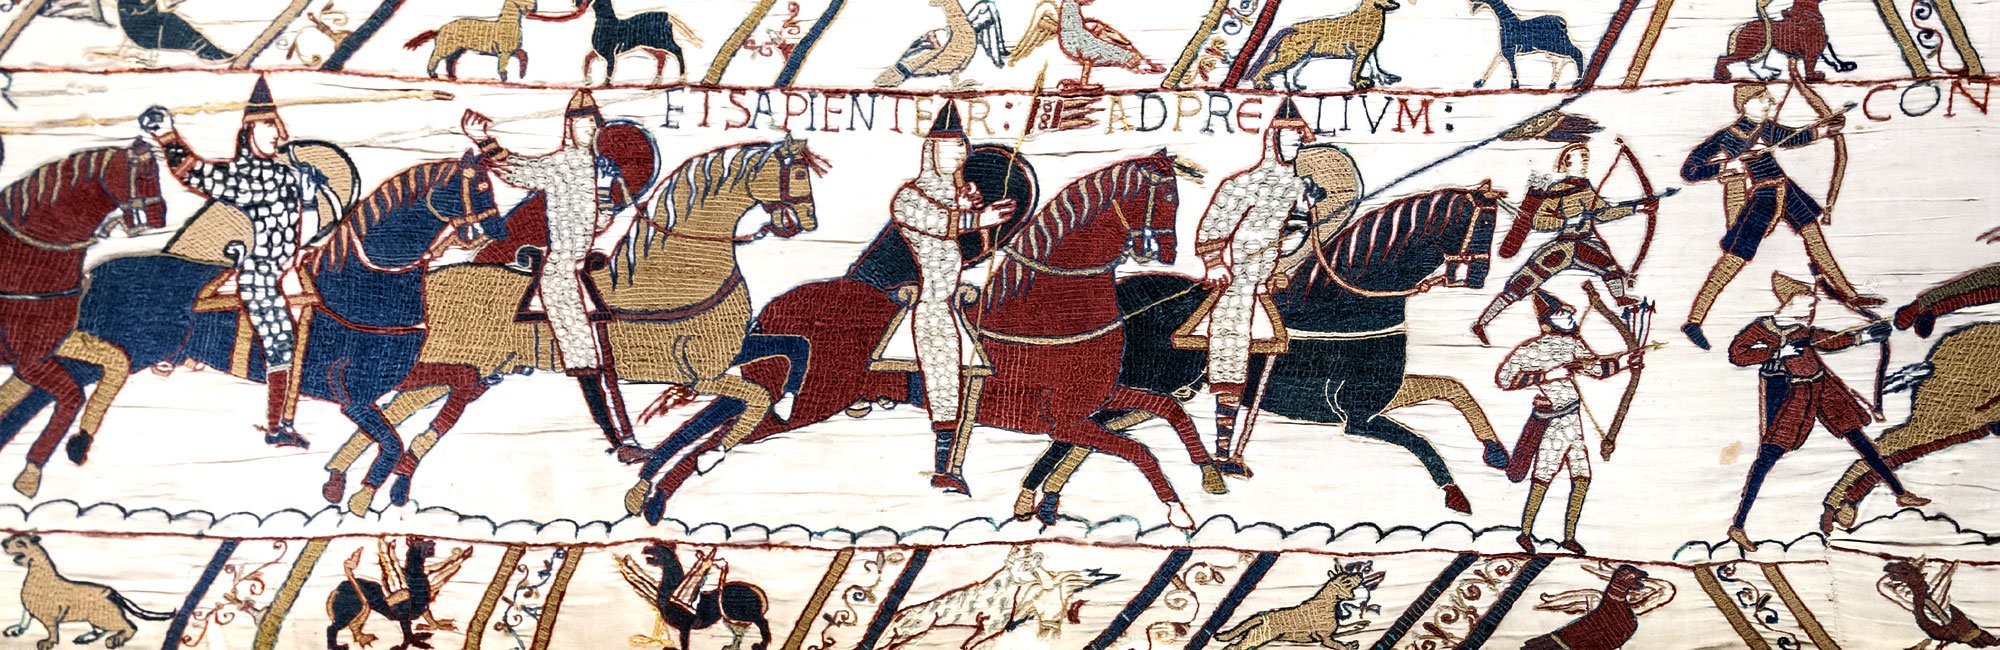 Bayeux-Tapestry-banner